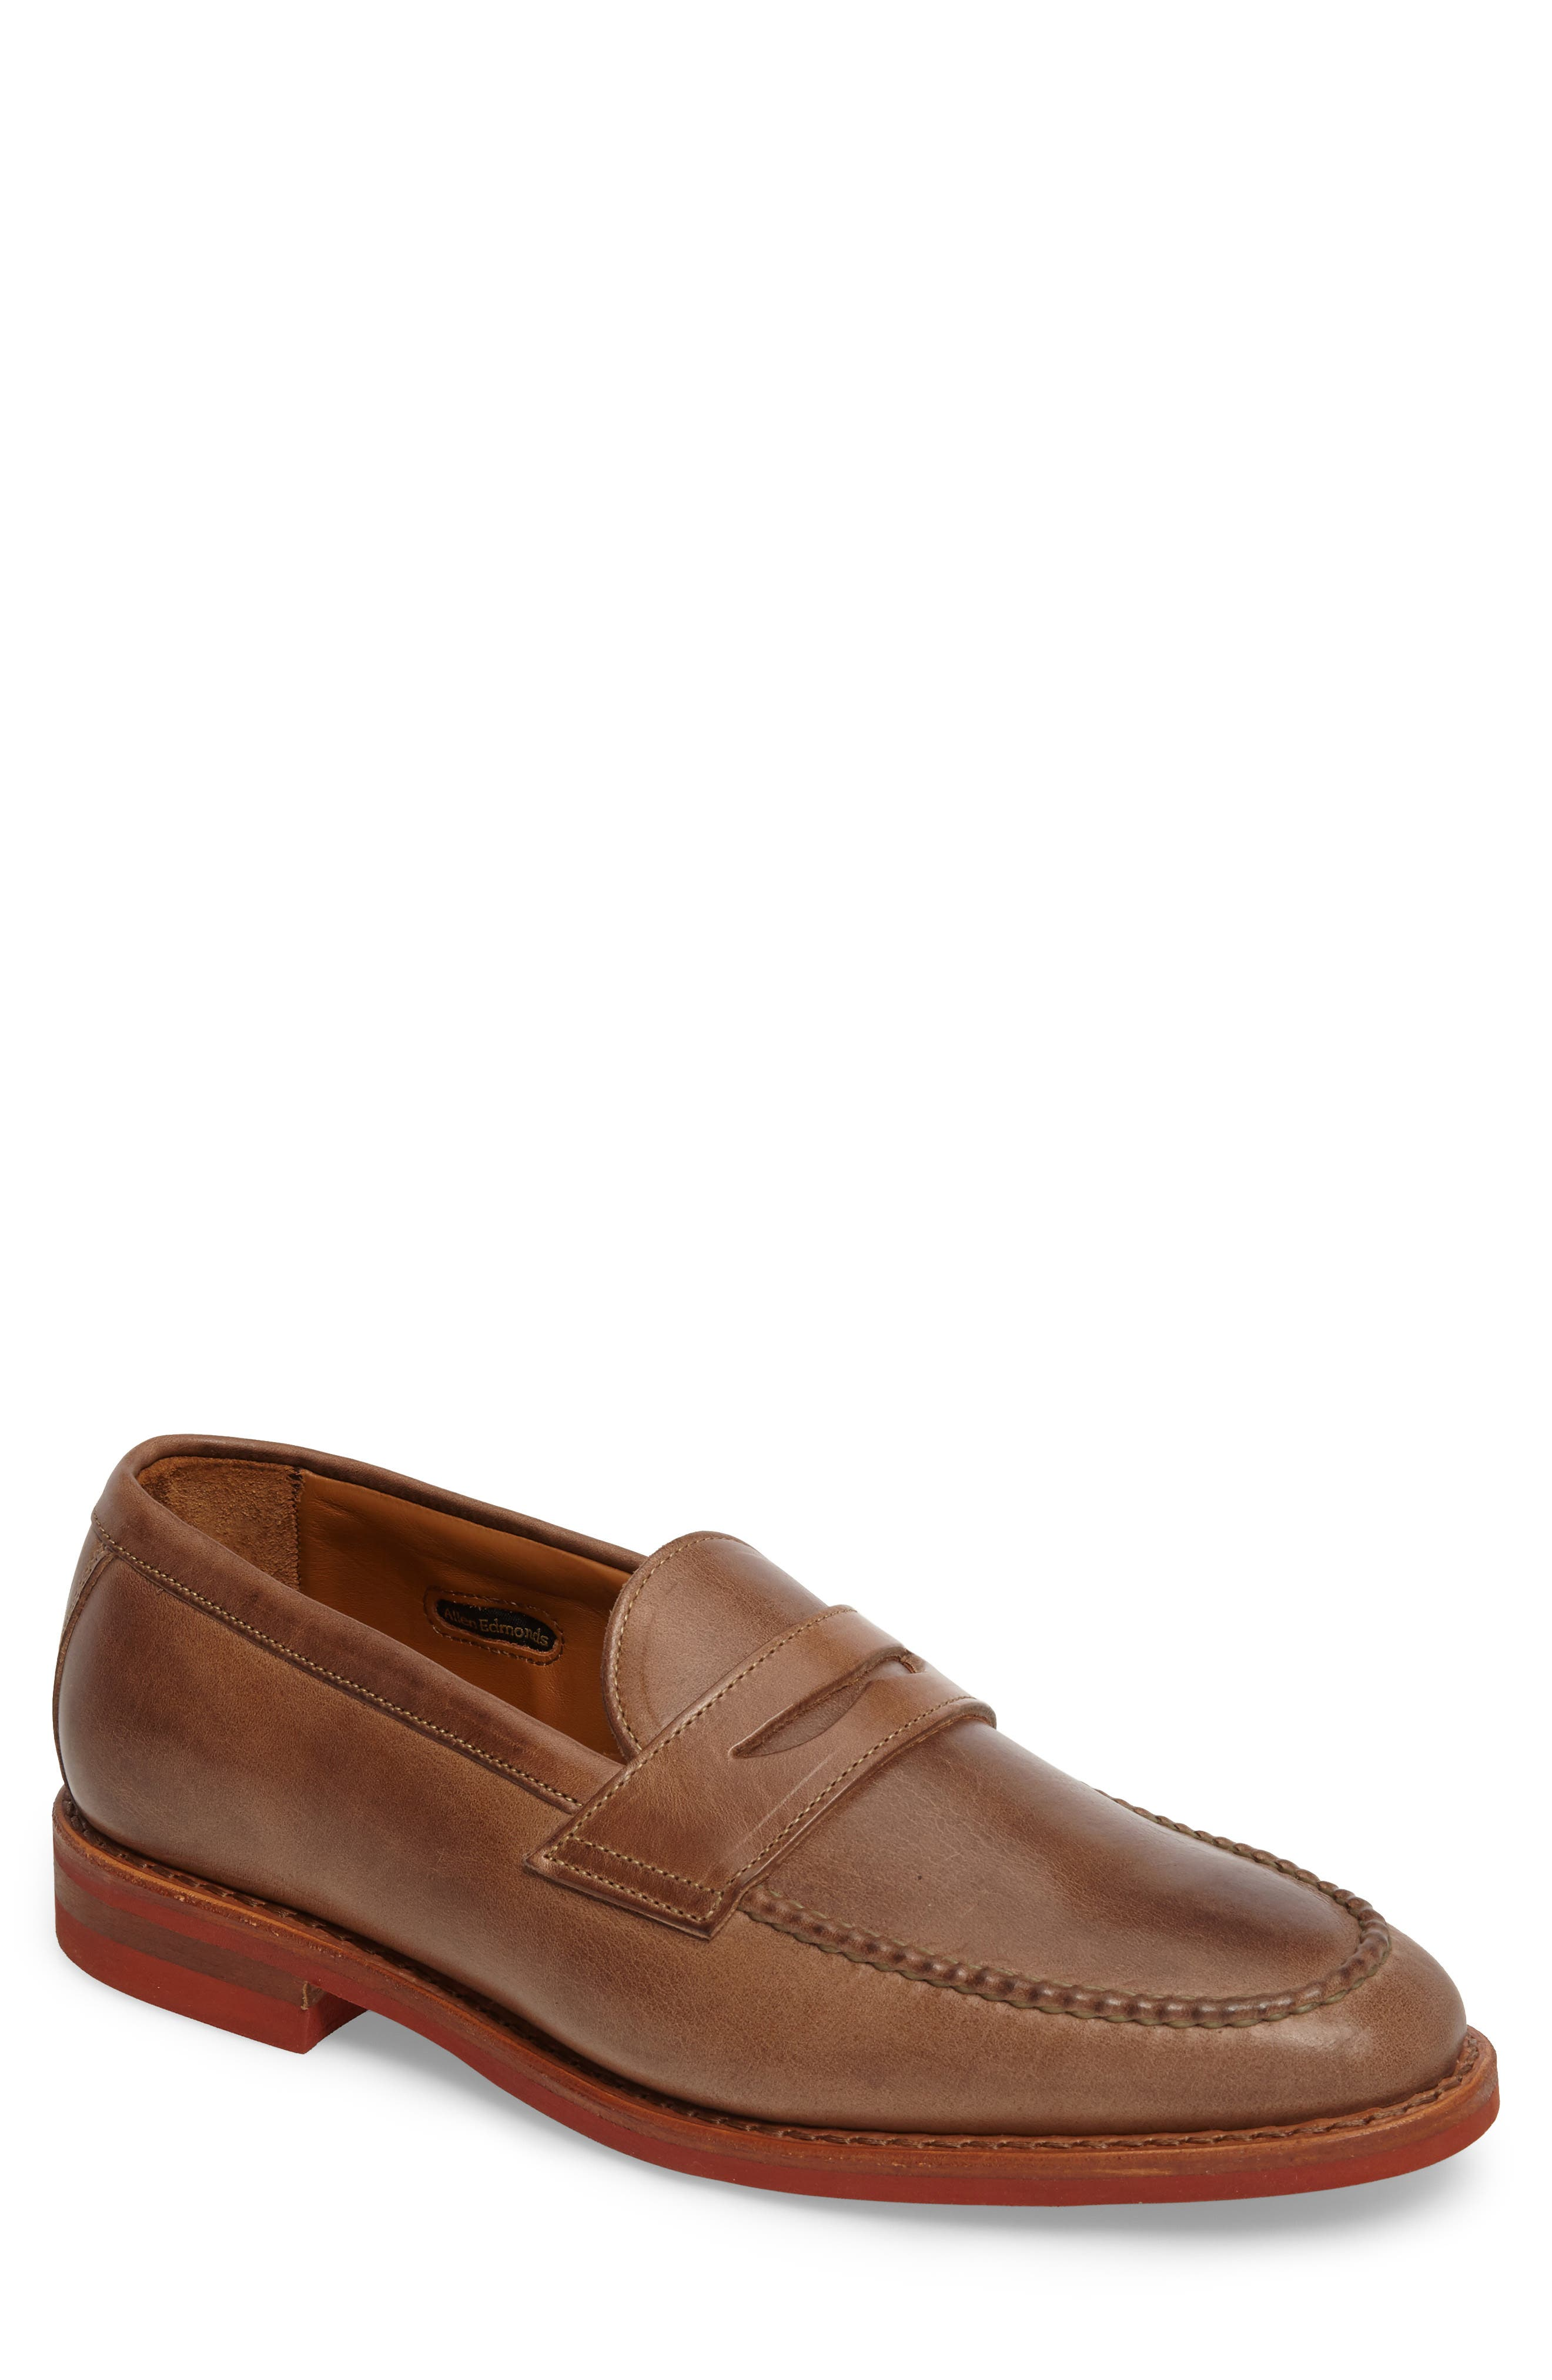 Addison Penny Loafer,                             Main thumbnail 1, color,                             200